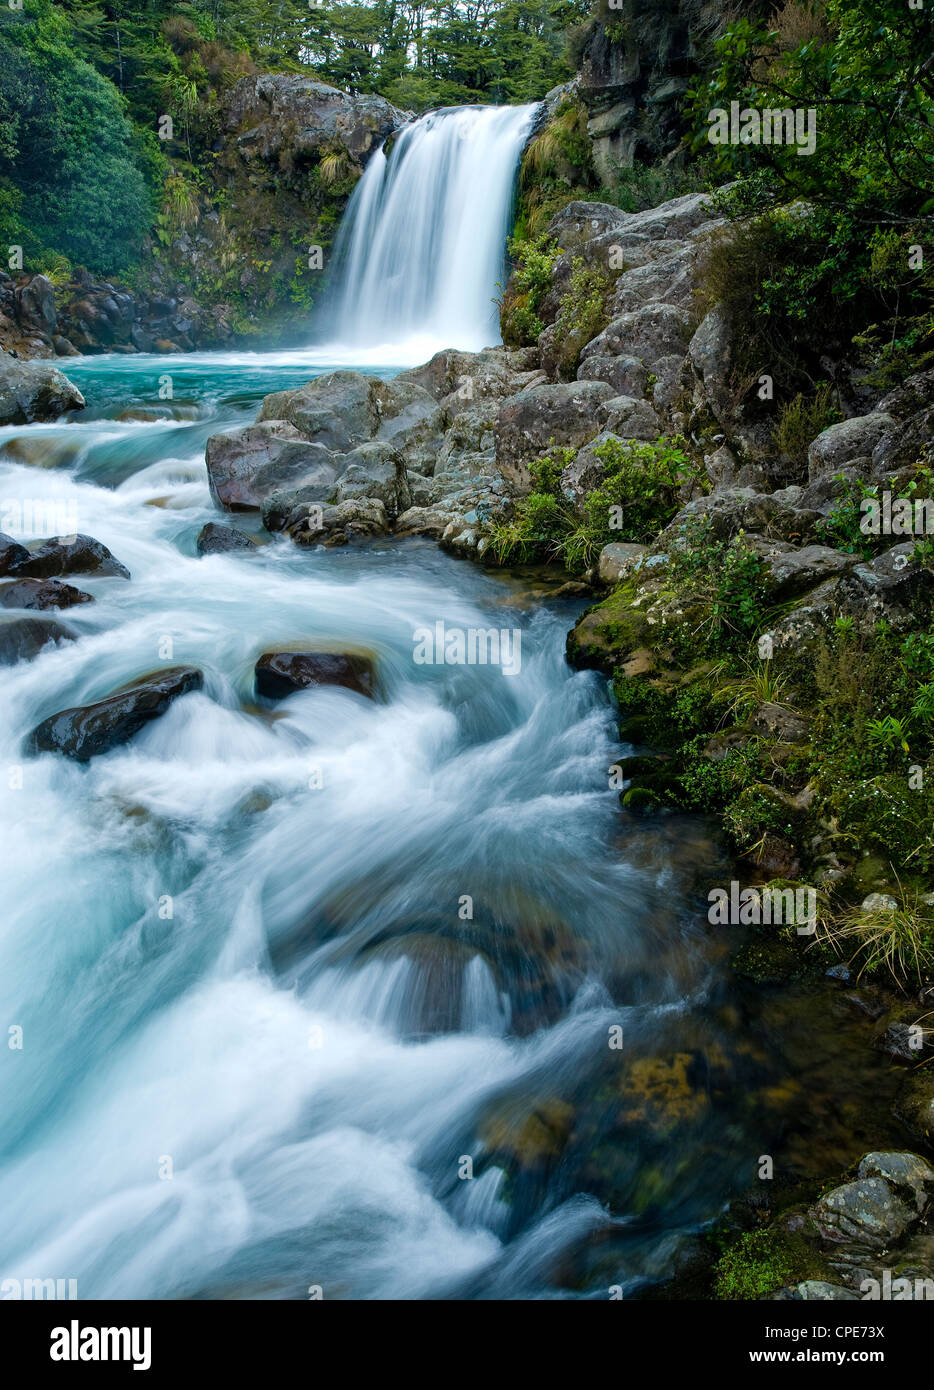 Tawhai Falls, Tongariro National Park, UNESCO World Heritage Site, North Island, New Zealand, Pacific - Stock Image